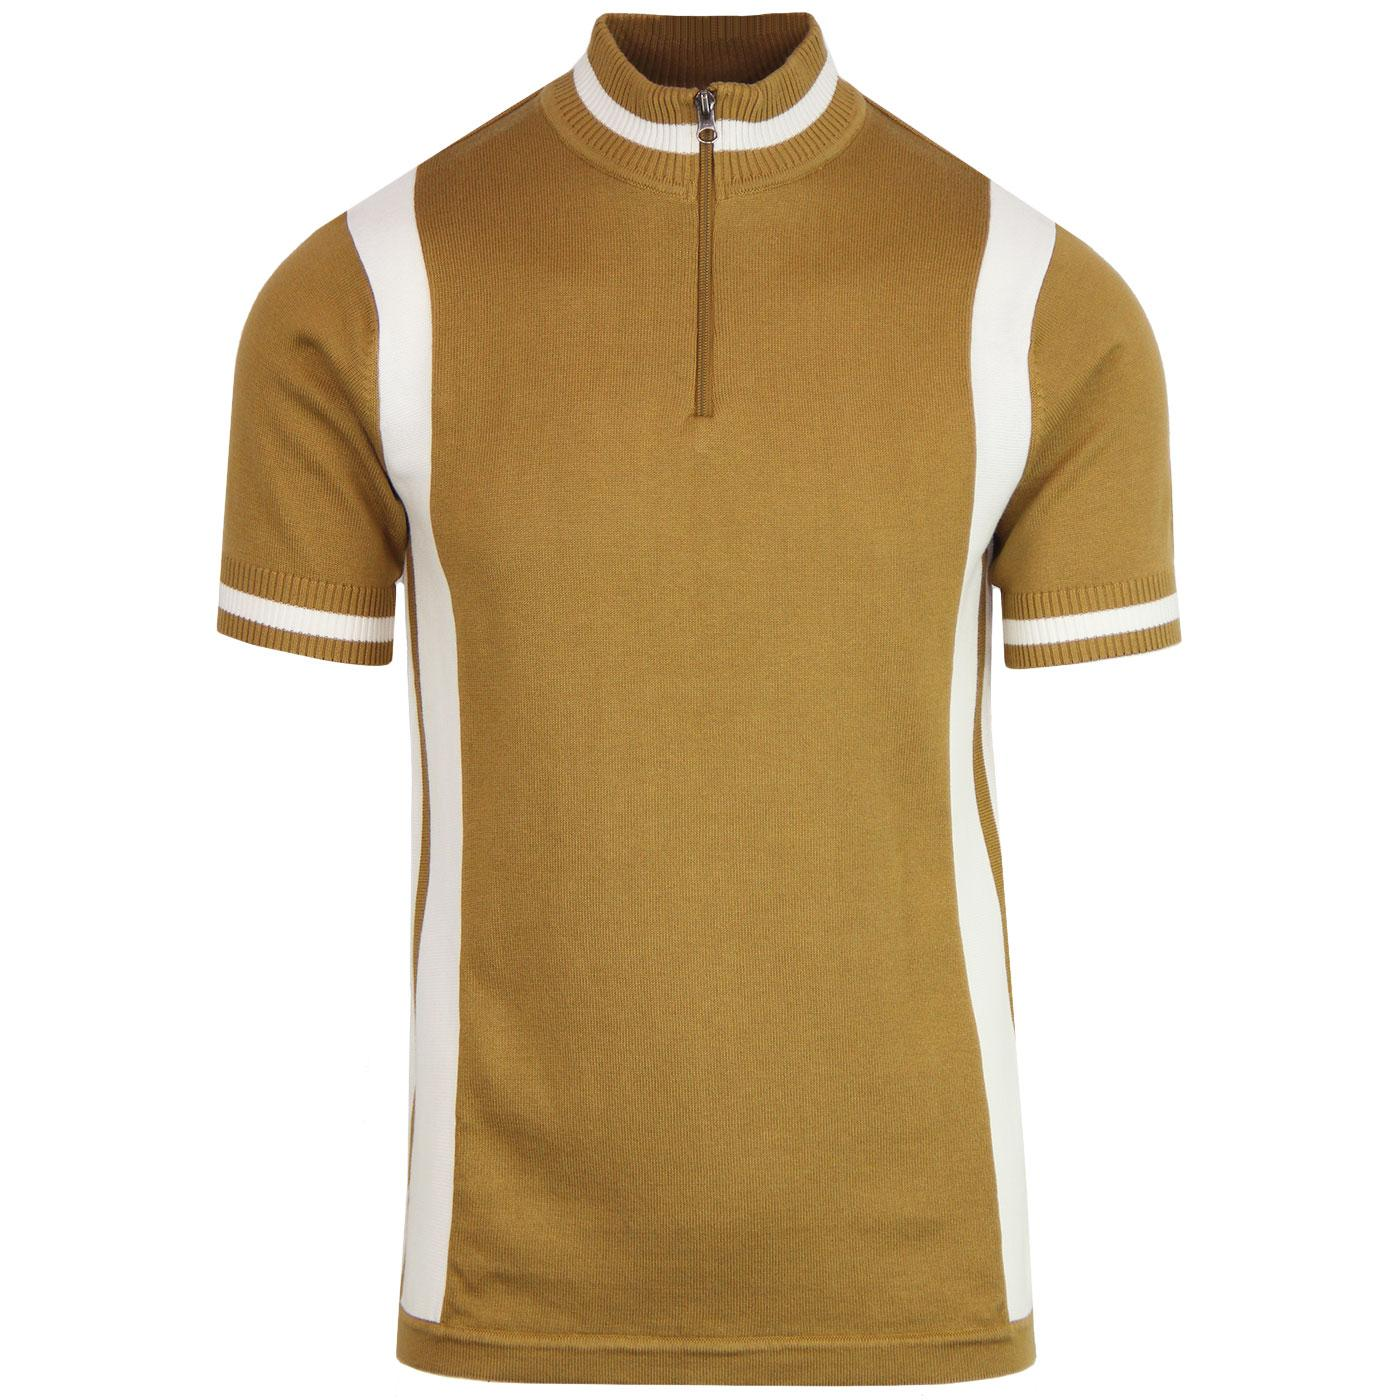 Vitesse MADCAP ENGLAND Retro Mod Cycling Top (FL)